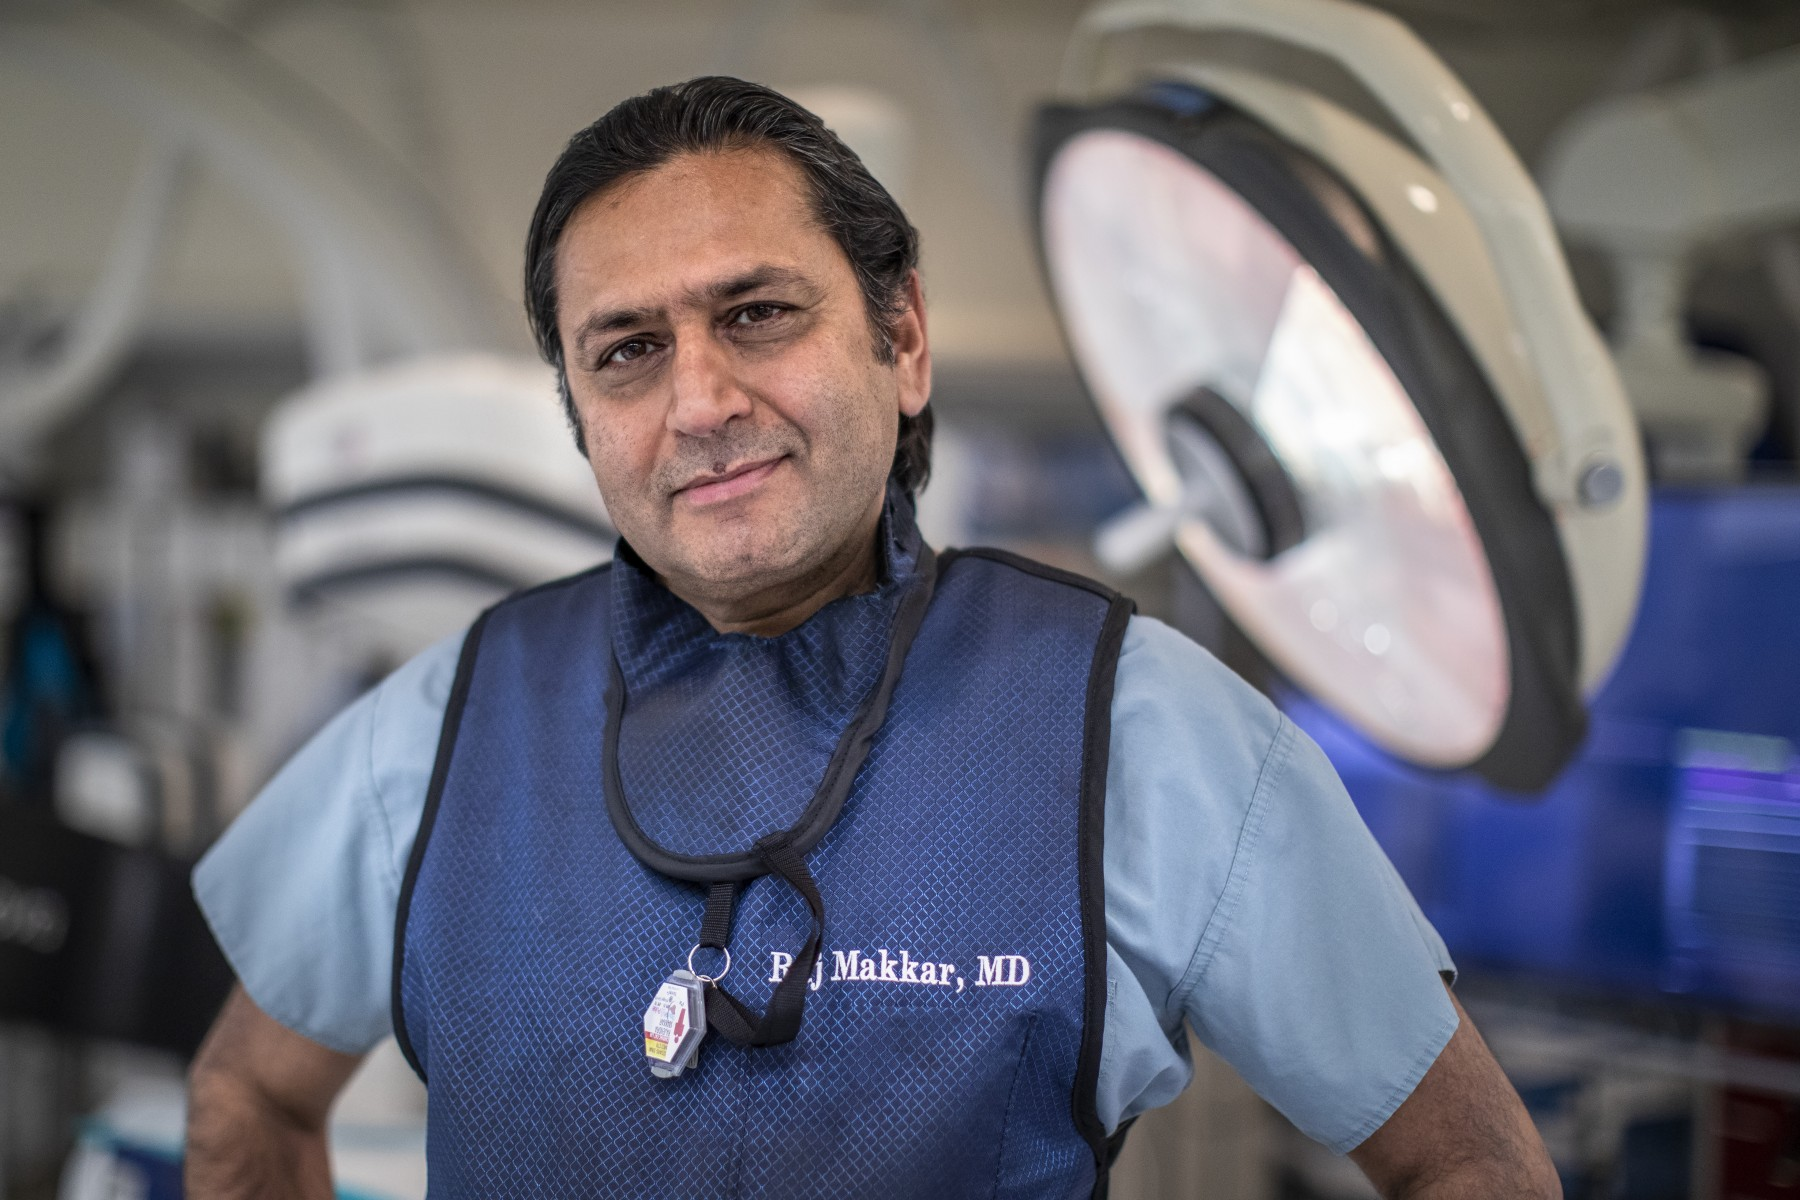 Raj Makkar, MD, led a multicenter national study comparing outcomes for minimally invasive heart valve replacement to open-heart surgery. Photo by Cedars-Sinai.